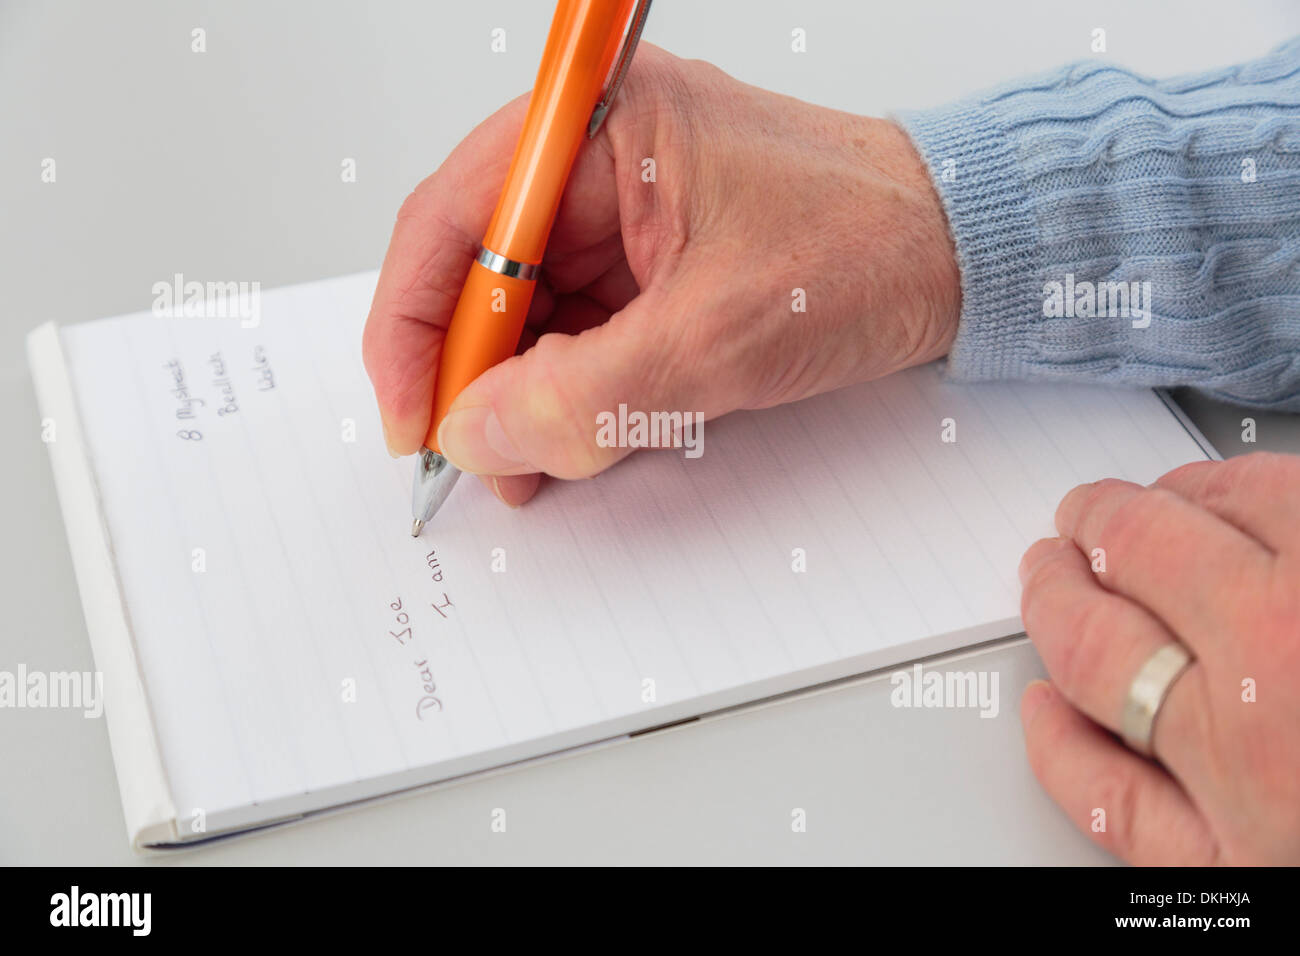 Top down of a right-handed senior woman's hand holding a pen writing a letter on a notepad of paper on a tabletop. England UK - Stock Image